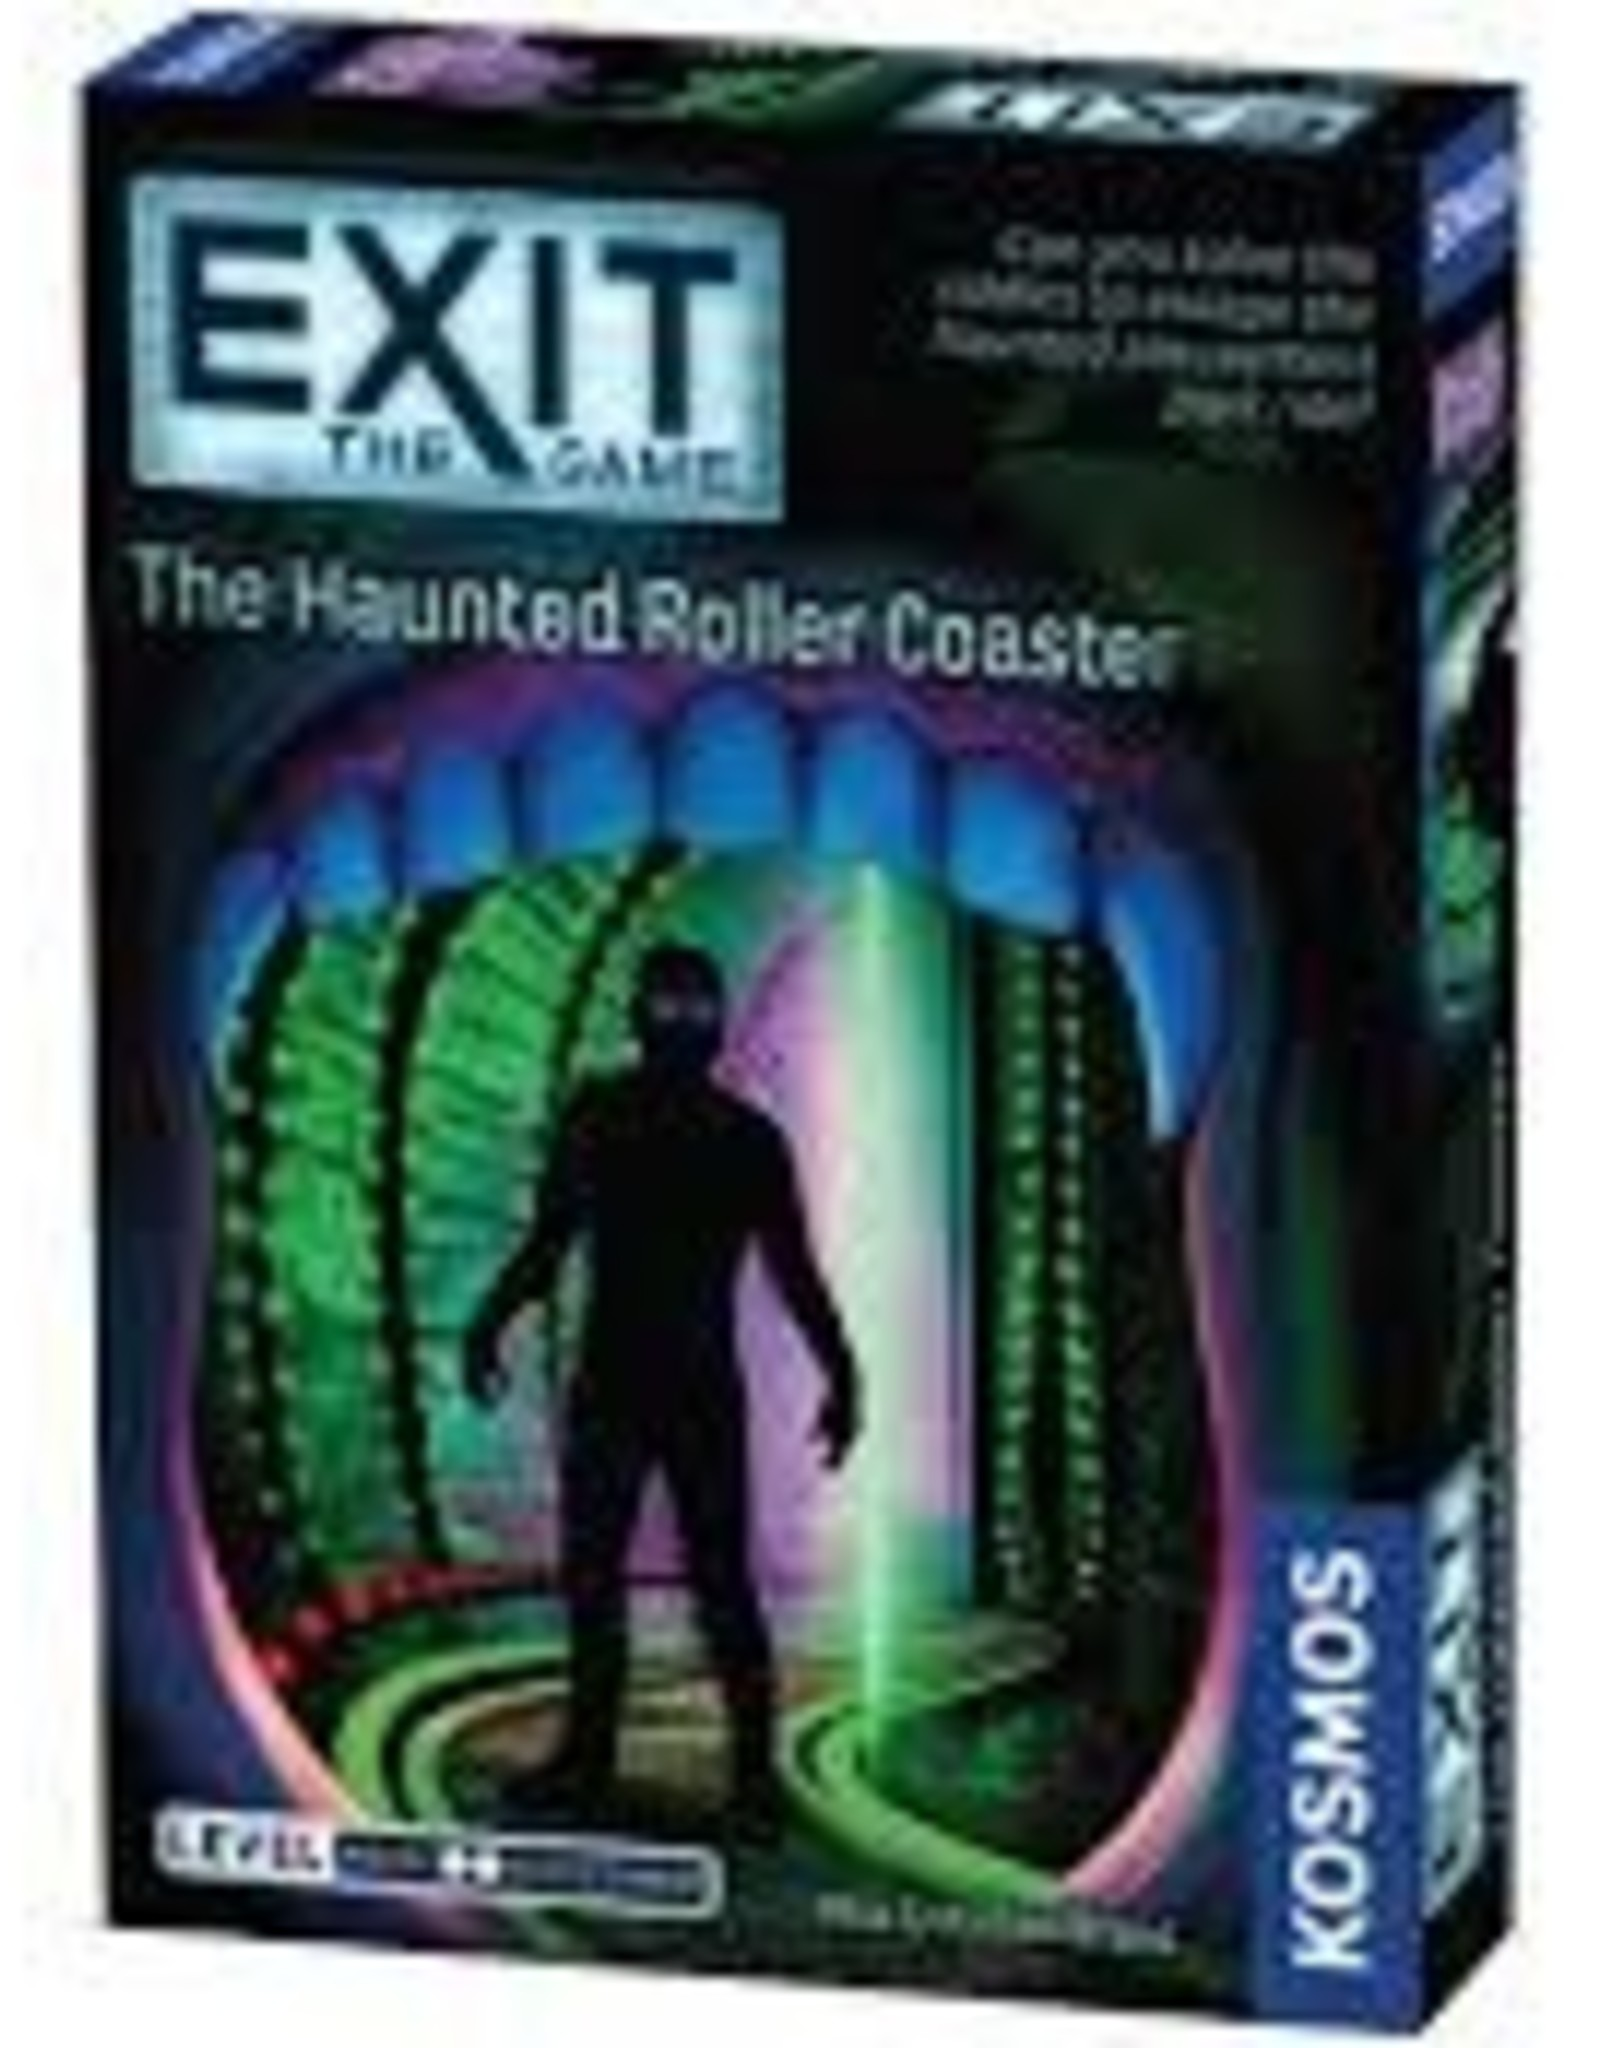 Thames & Kosmos EXIT : The Haunted Roller Coaster